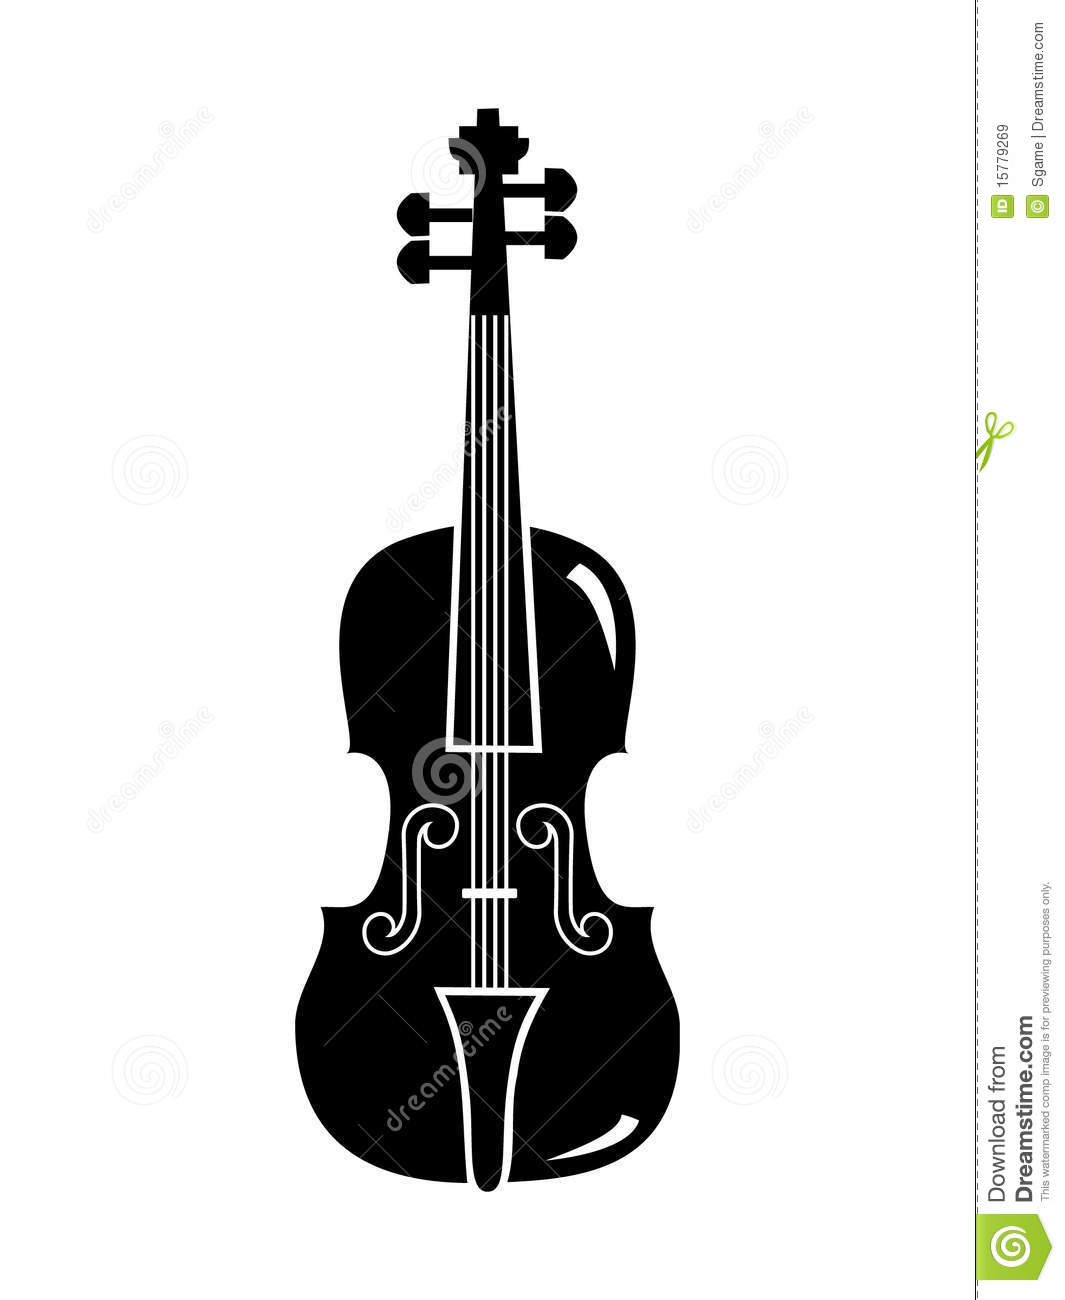 Violin Vector Royalty Free Stock Images - Image: 15779269